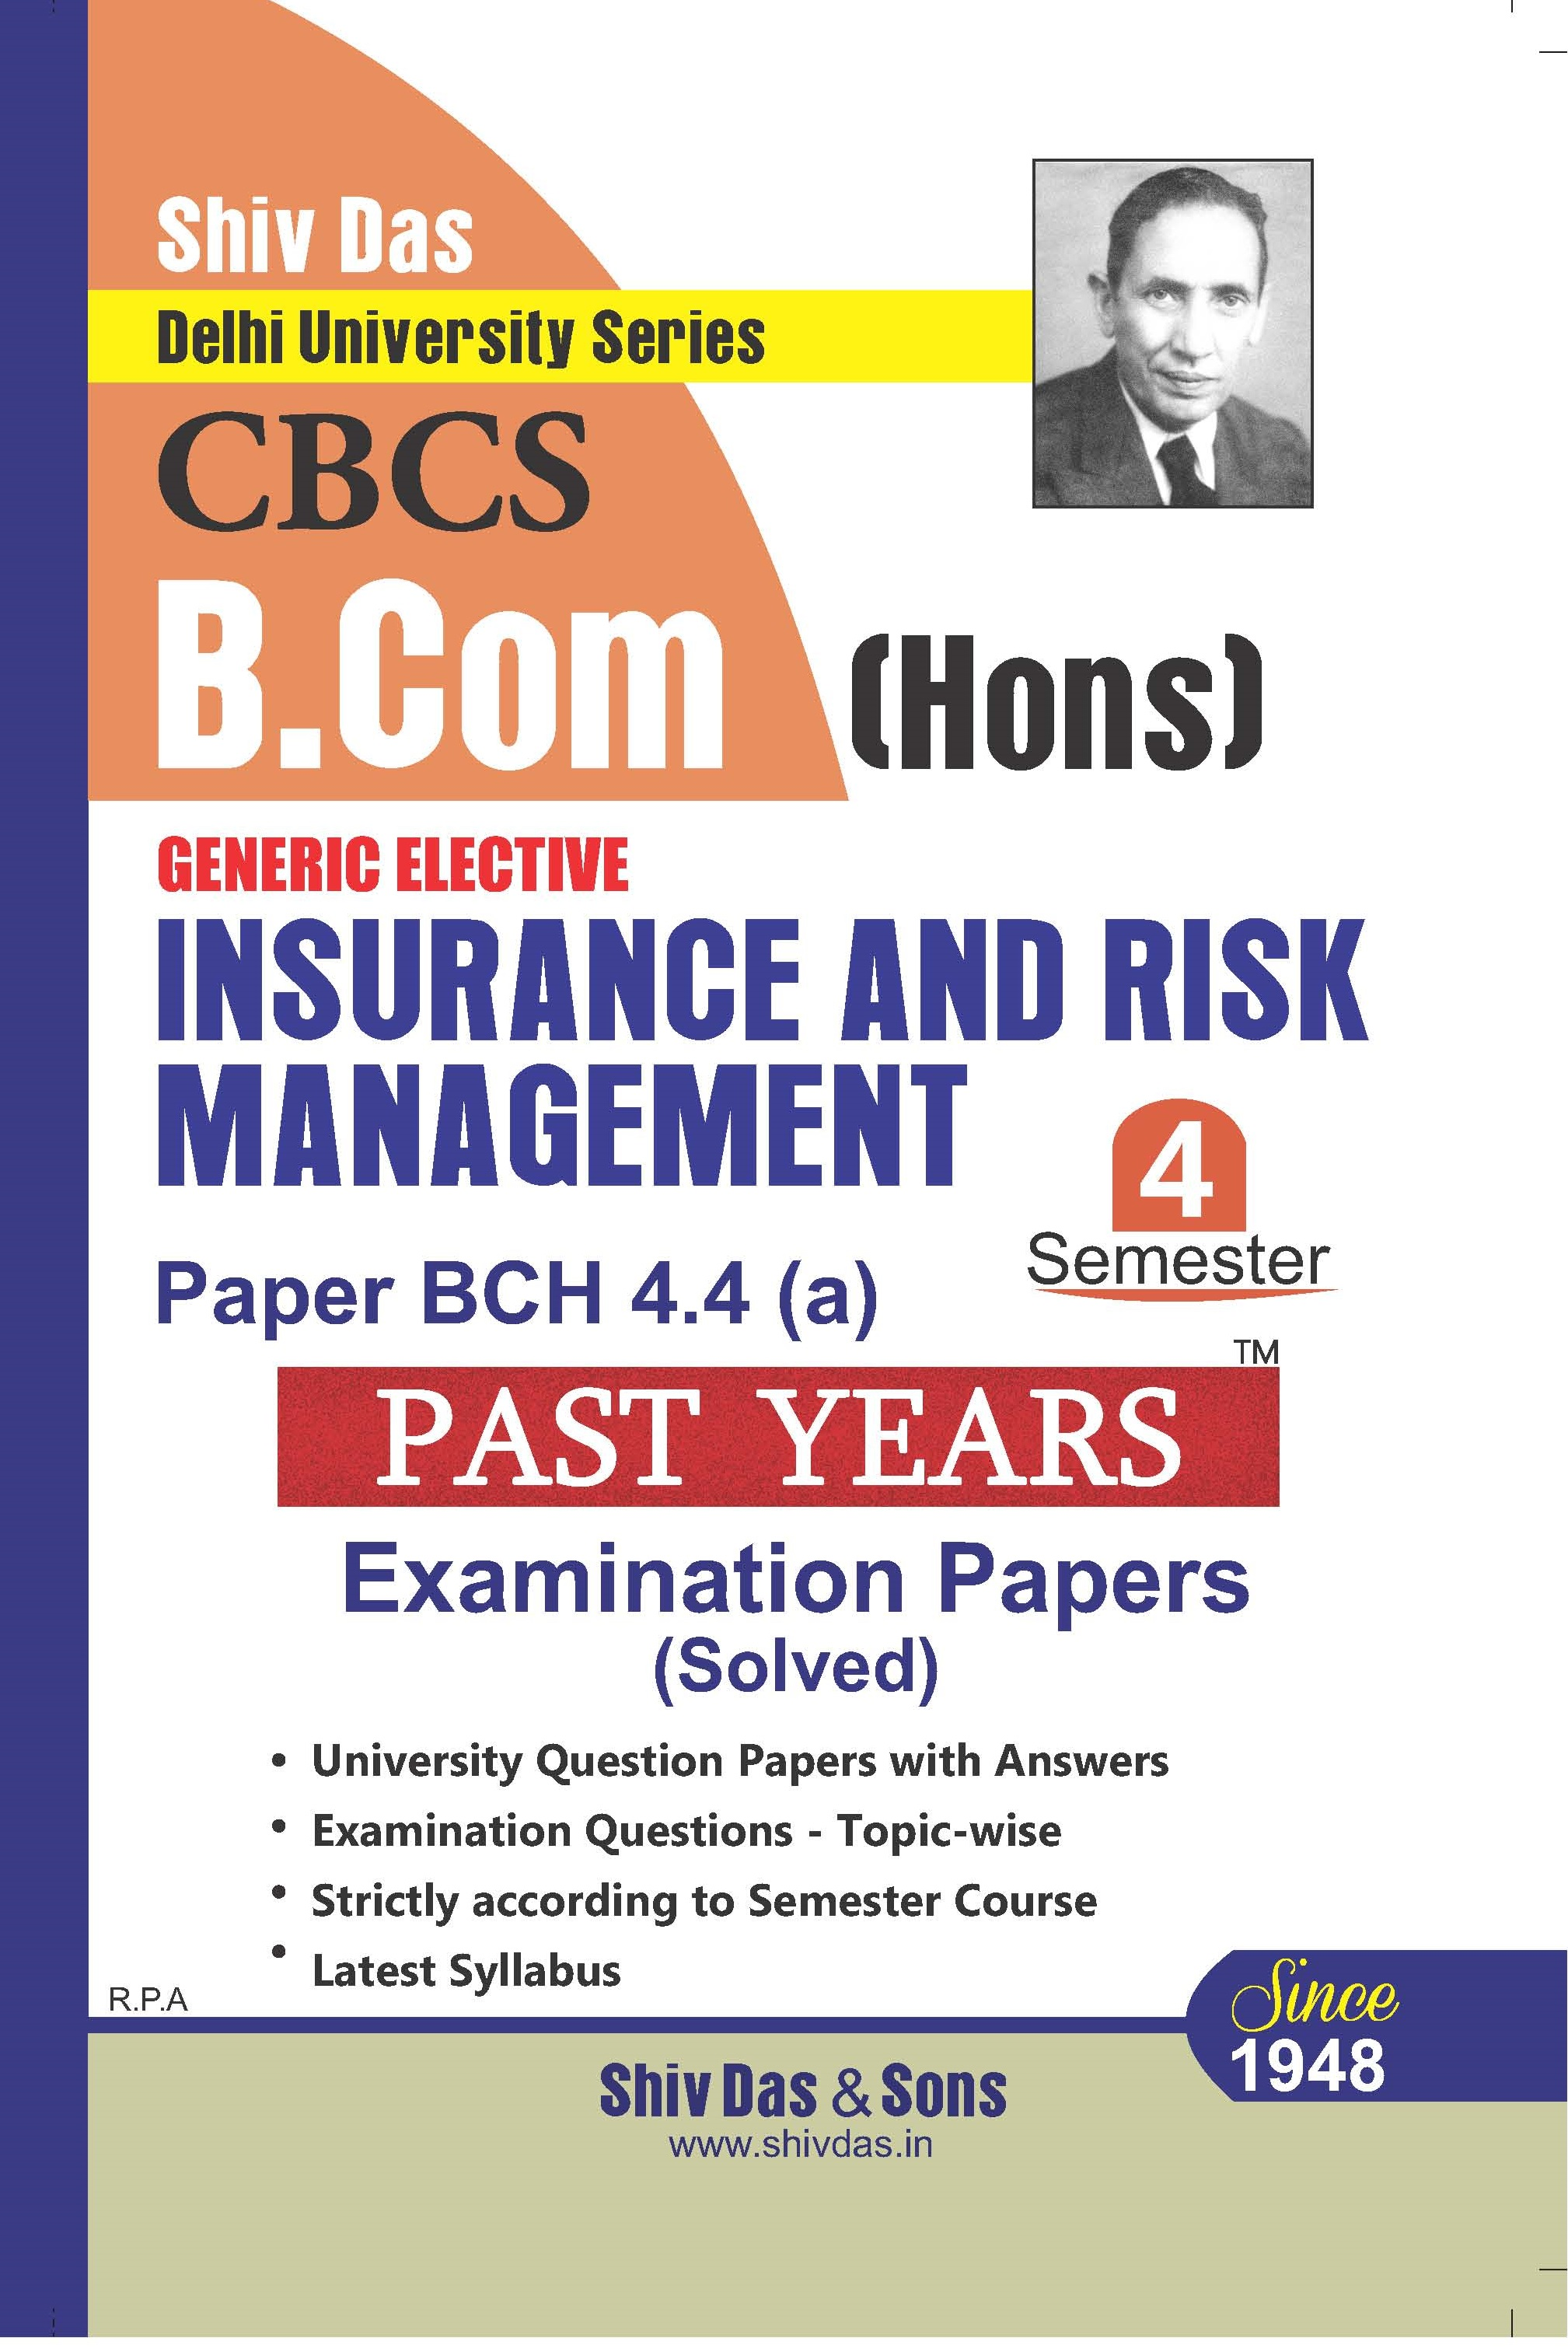 Insurance and Risk Management for B.Com Hons Semester-4 for Delhi University by Shiv Das